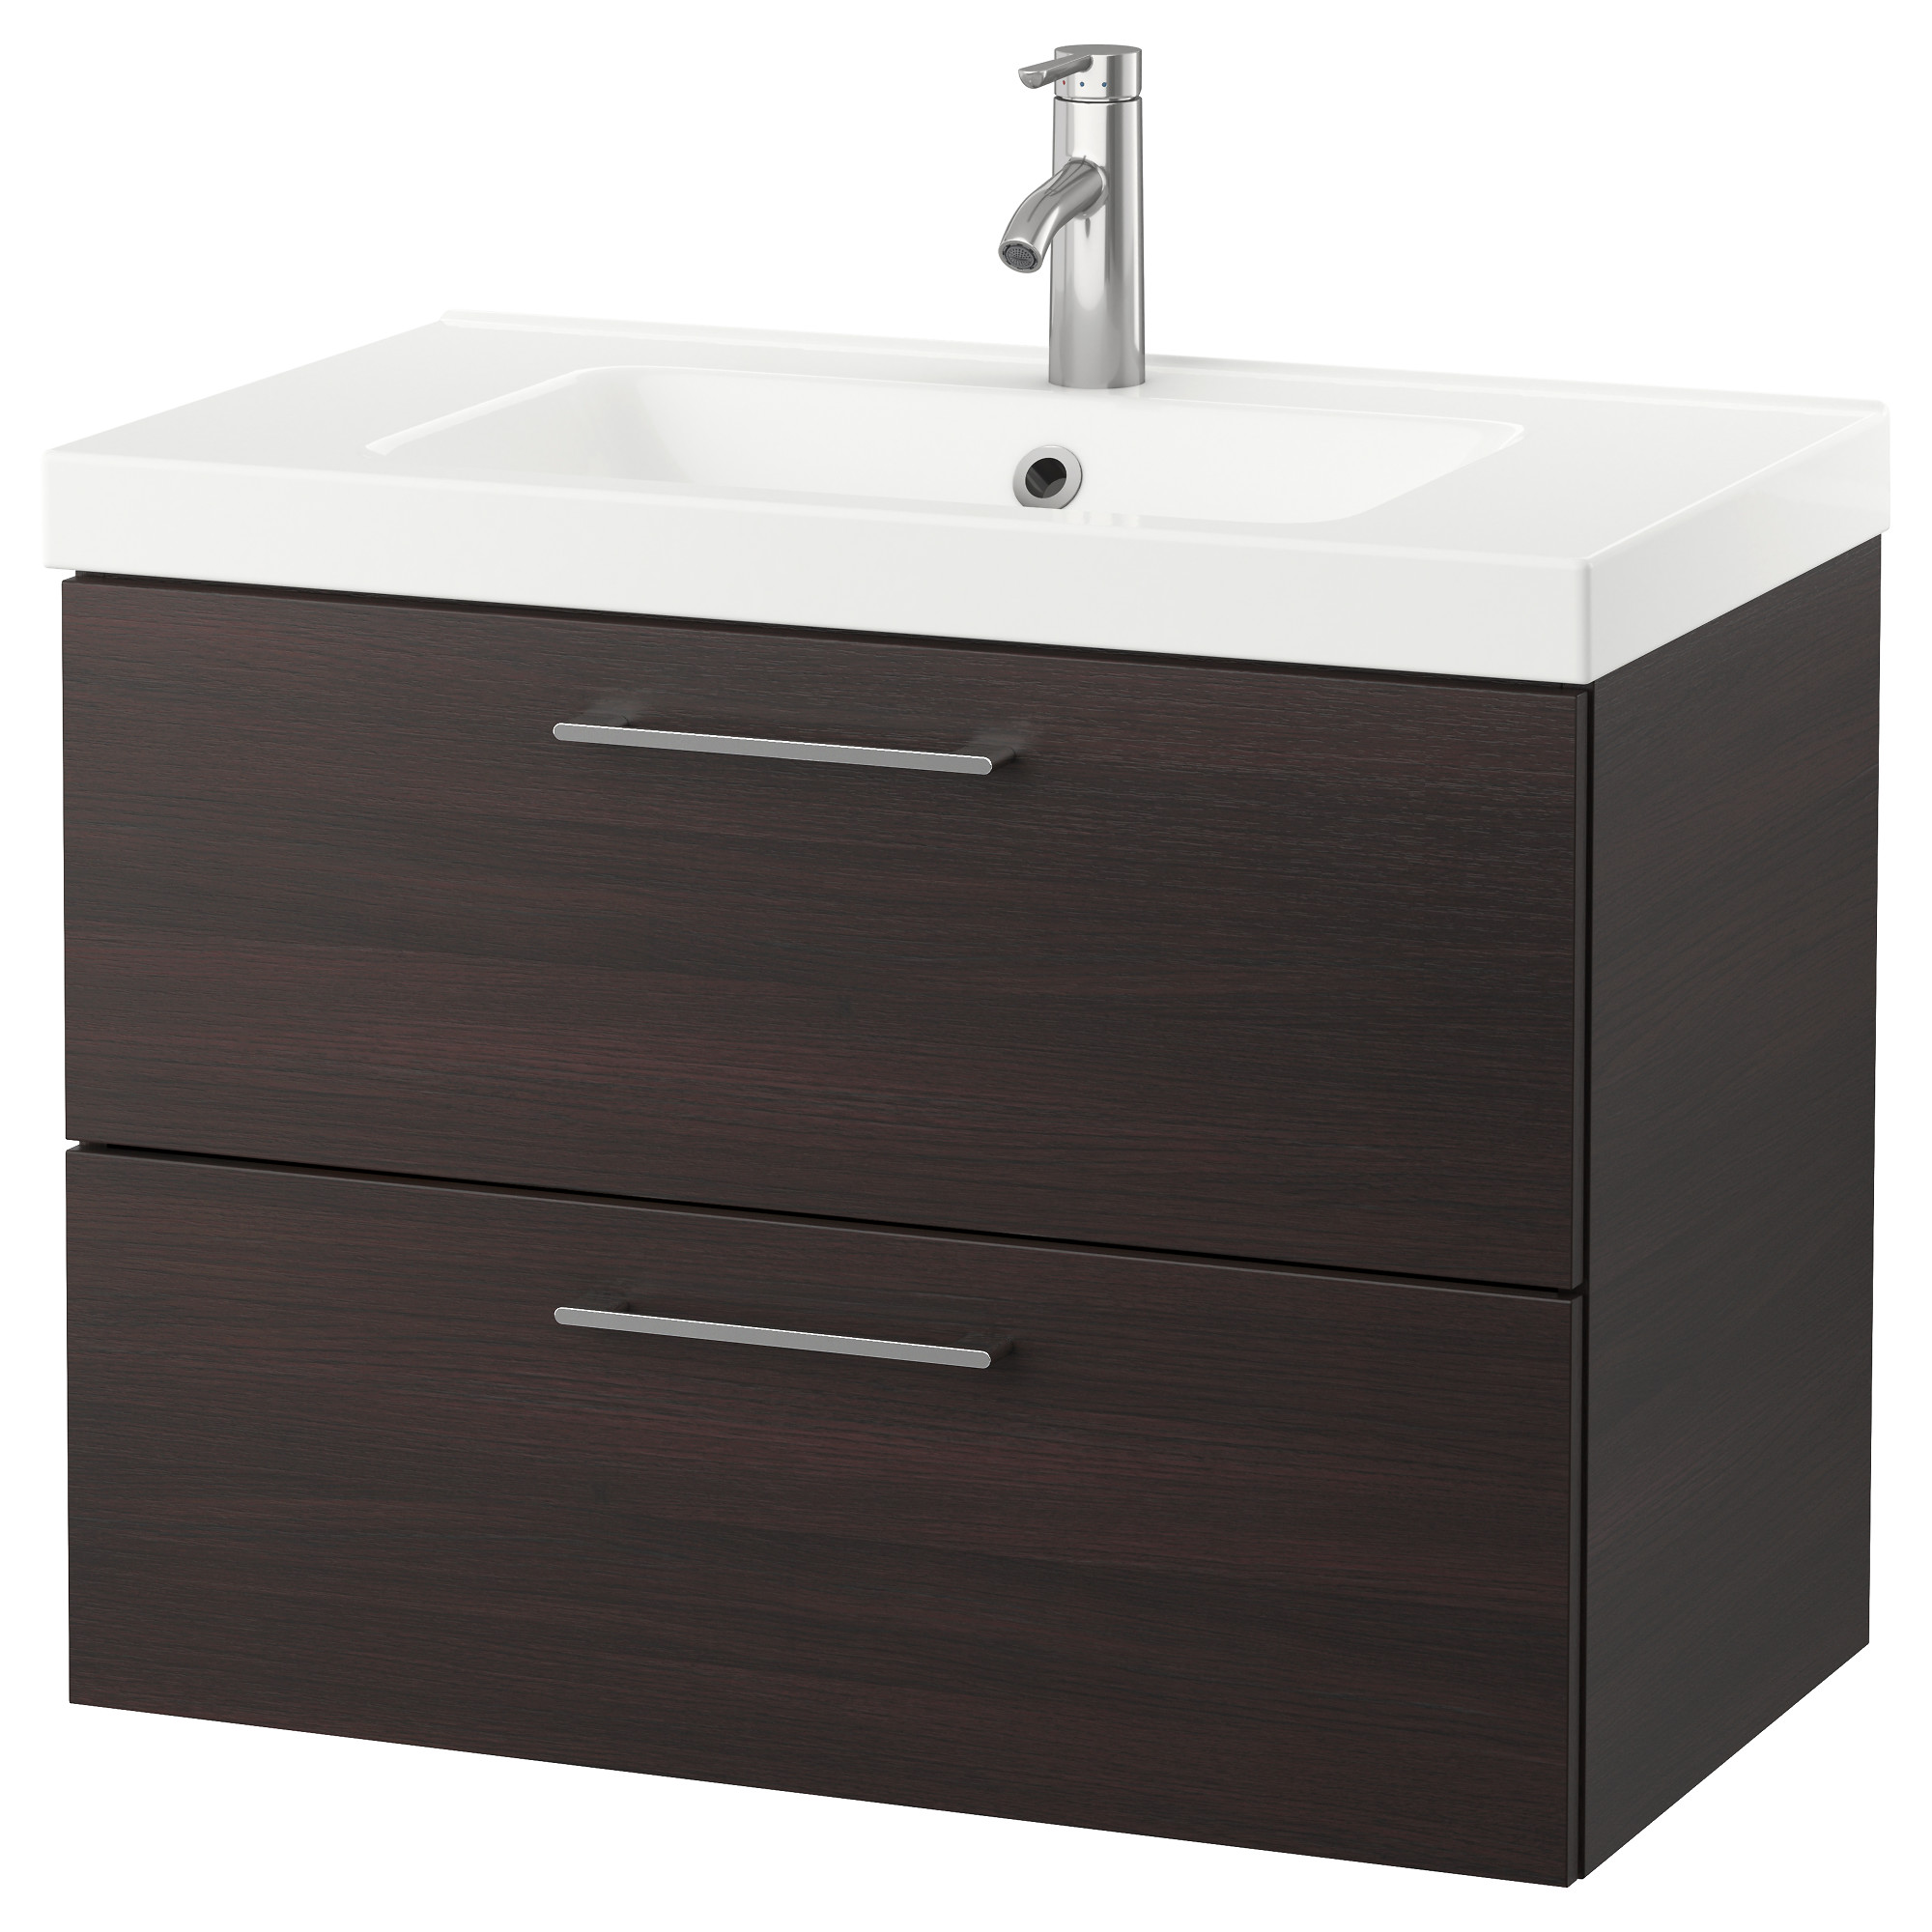 GODMORGON / ODENSVIK Sink Cabinet With 2 Drawers, Black Brown Width: 32 5